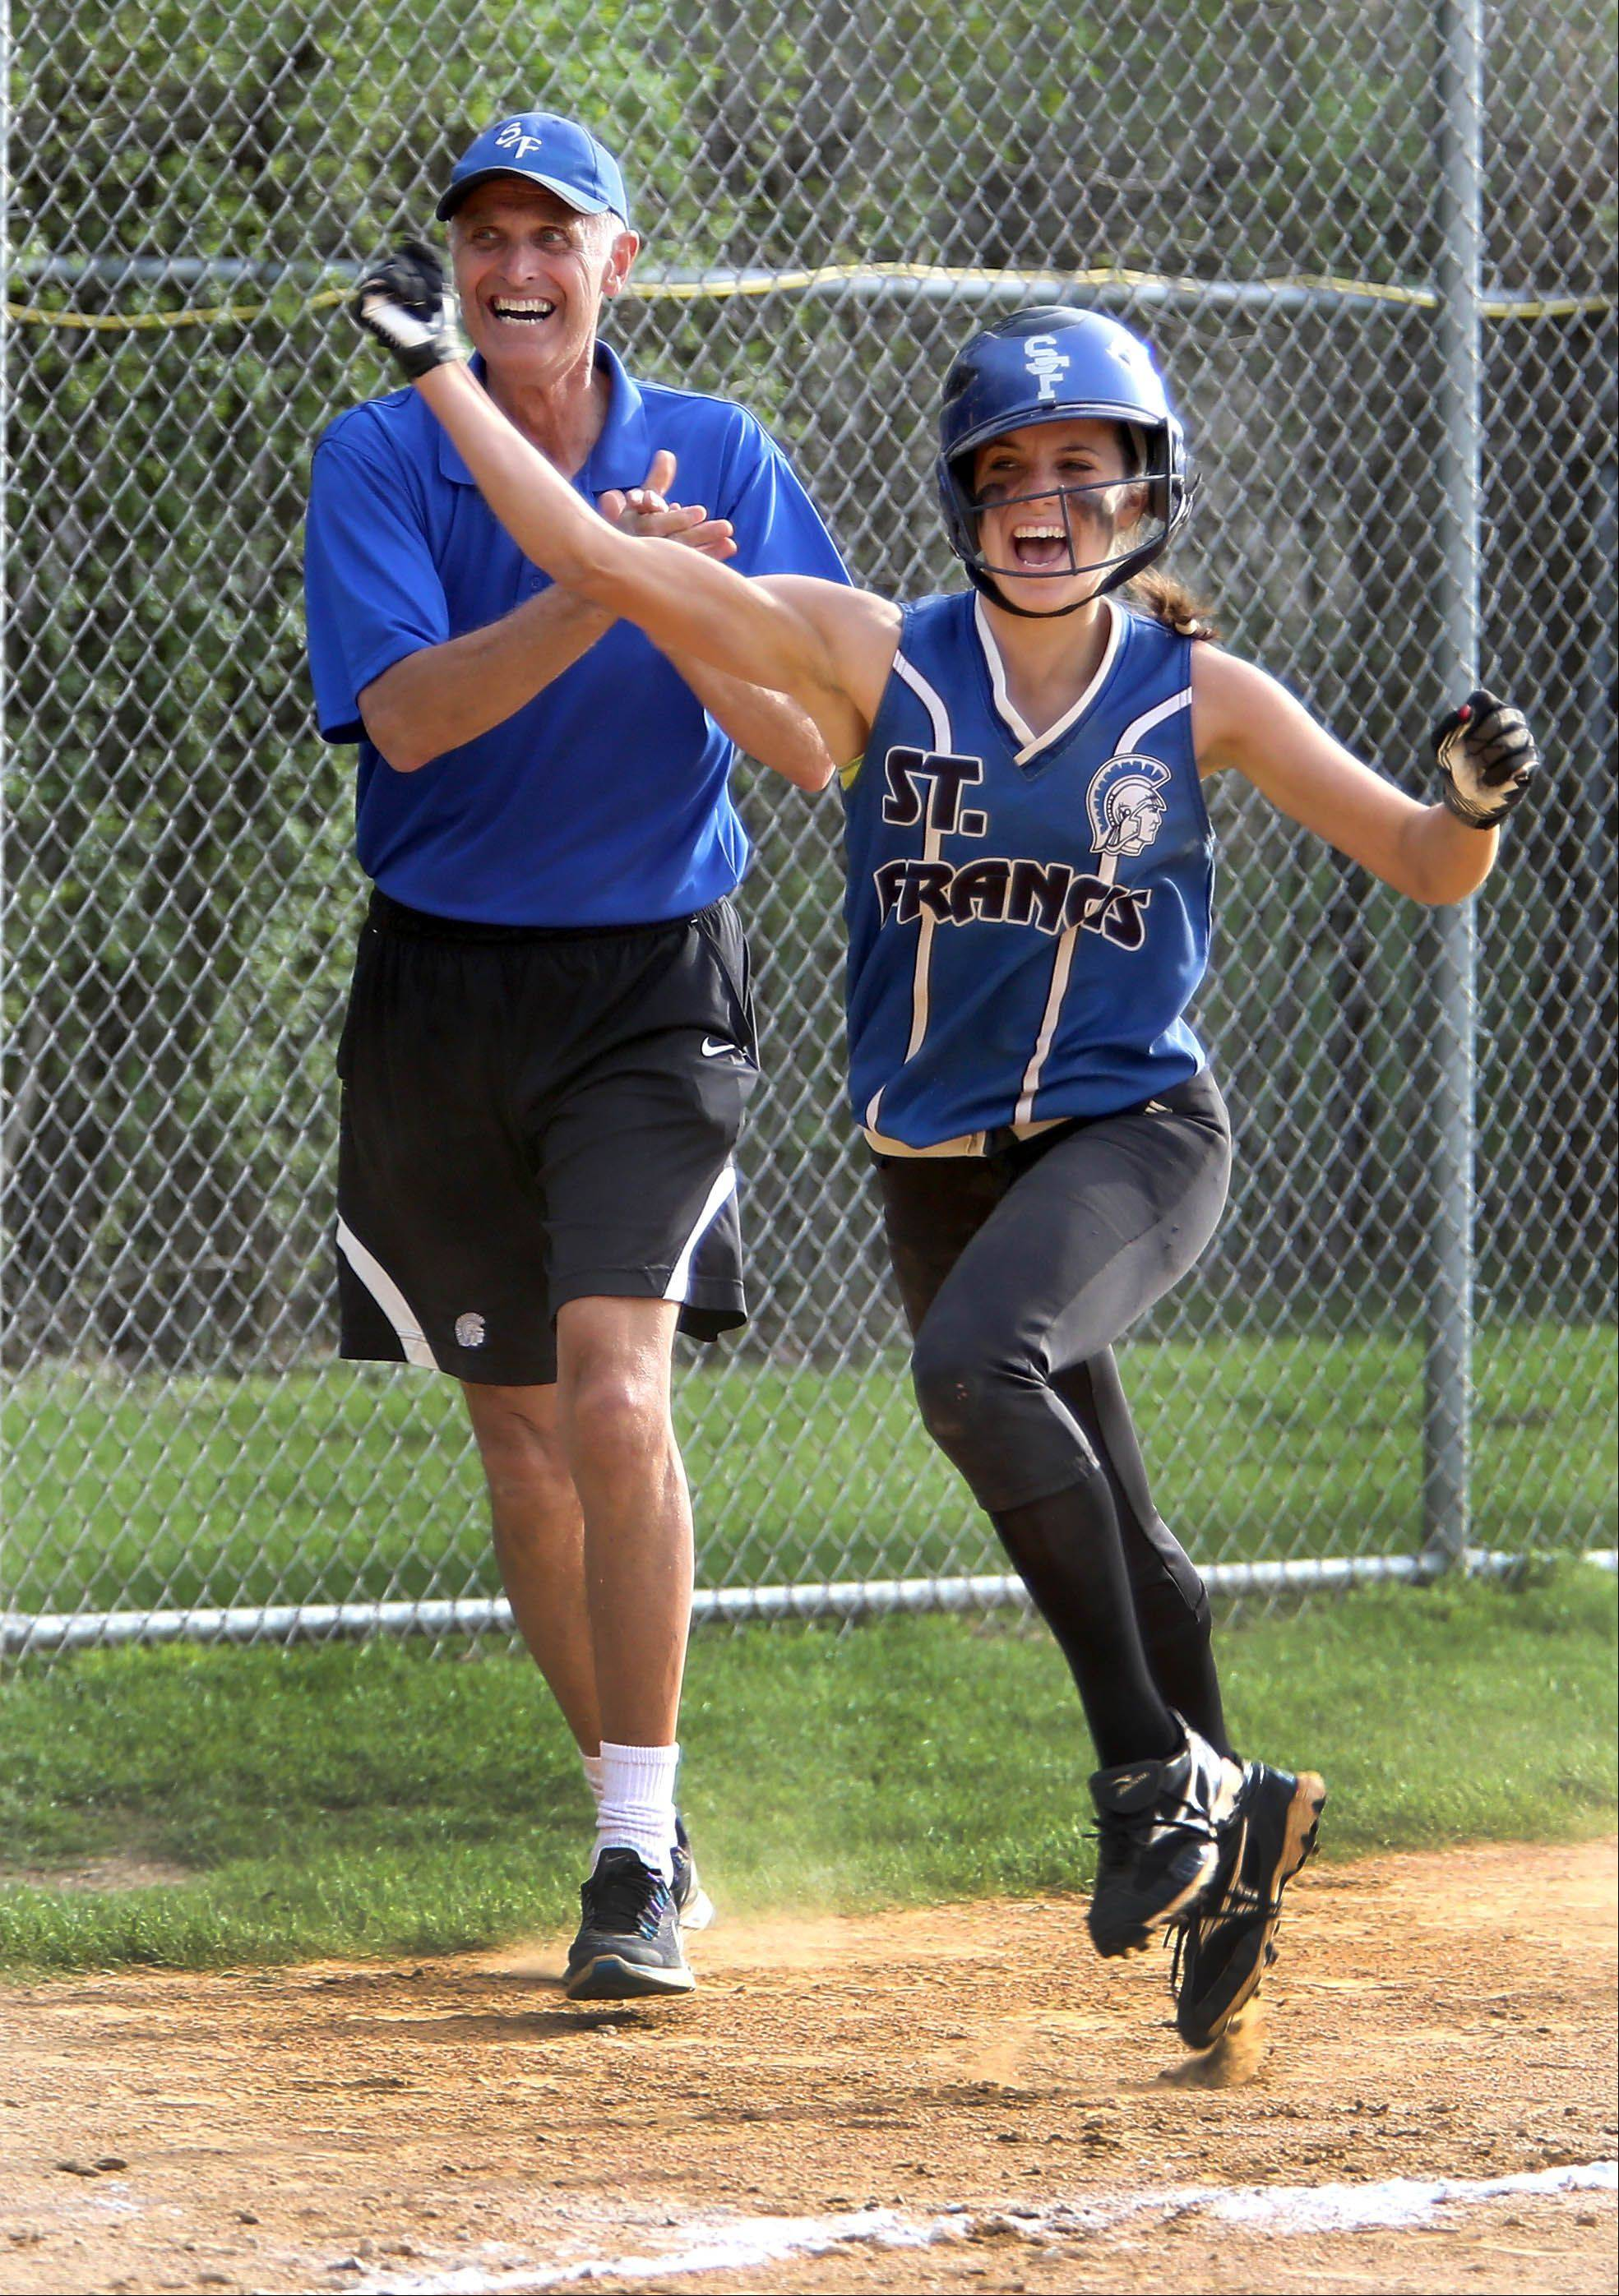 Head coach Ralph Remus is all smiles as Alyssa Fernandez heads home after hitting a game-winning two-run homer Monday against Montini in Wheaton.